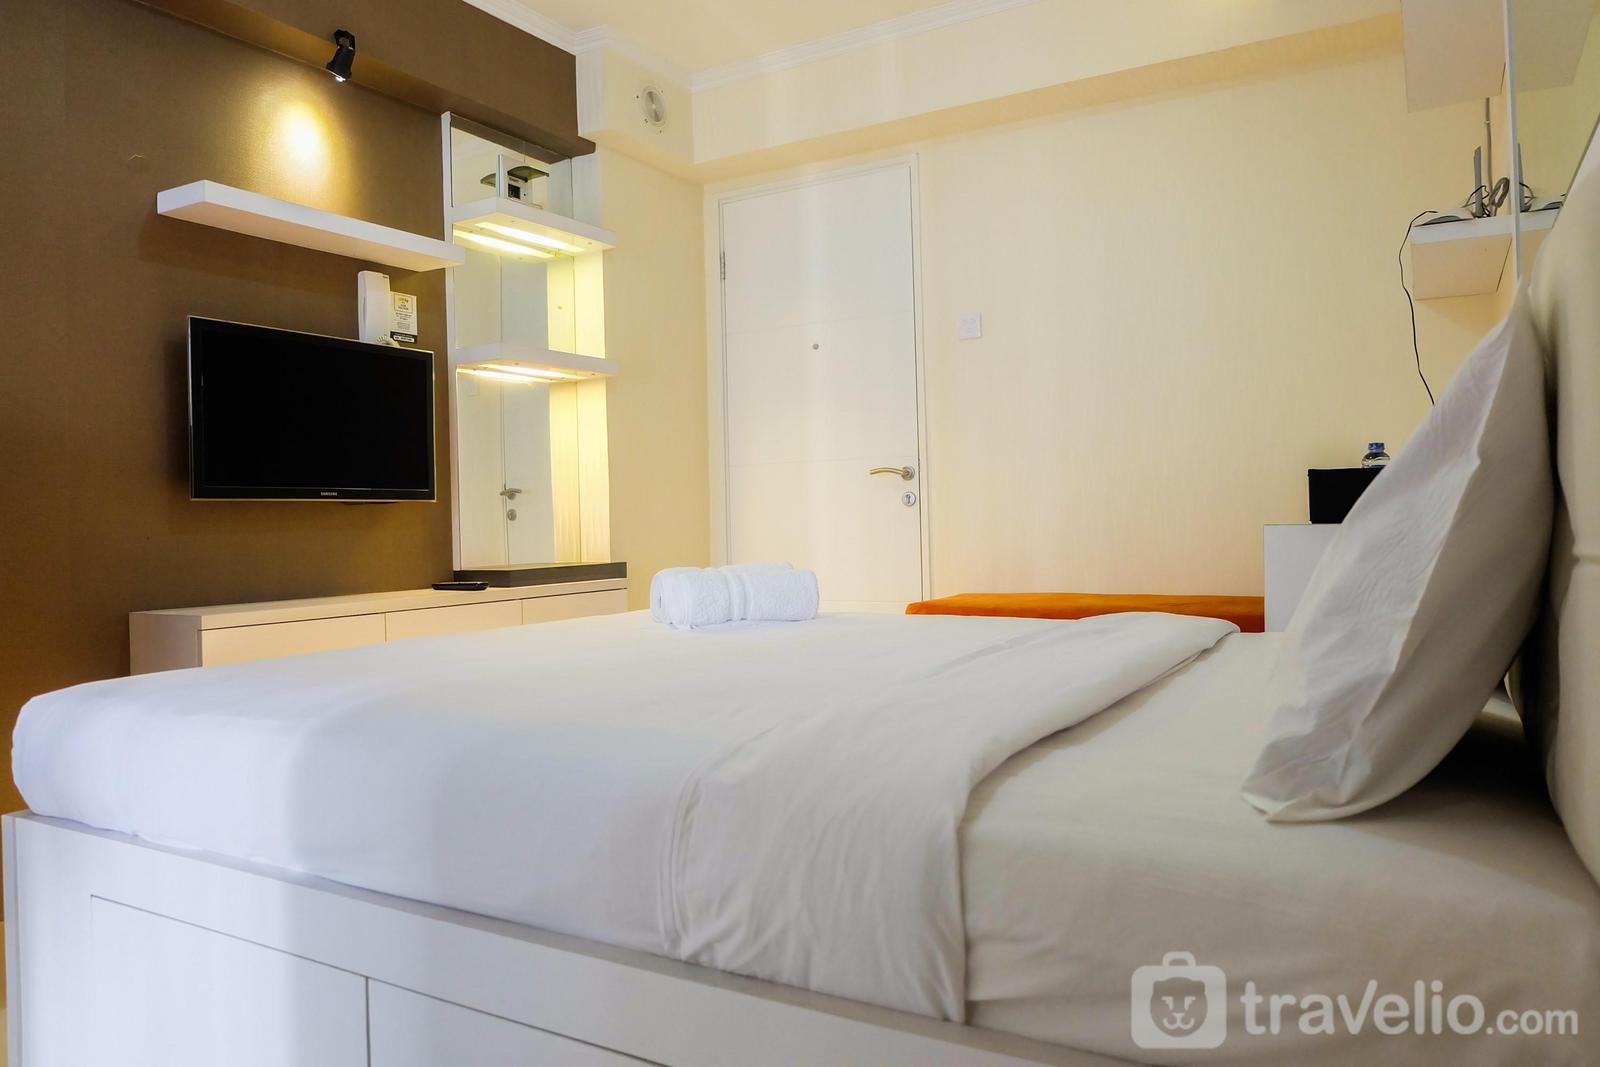 Bassura City Cipinang - Best Deal Bassura Studio Apartment By Travelio